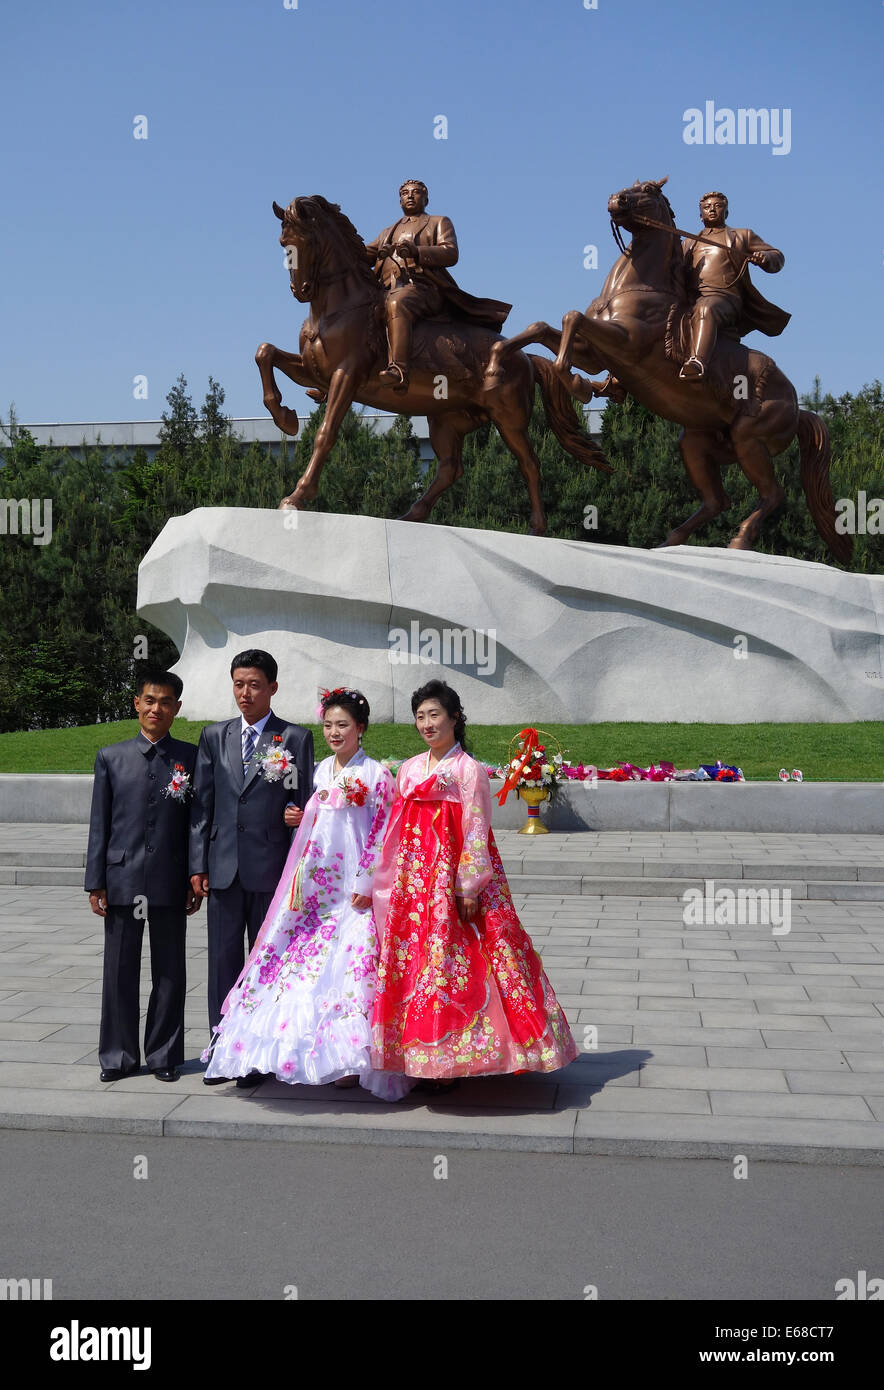 Wedding group, Bride and Groom in front of statue of Great Leaders Kim Il Sung and Kim Jong Il, Pyongyang, North - Stock Image